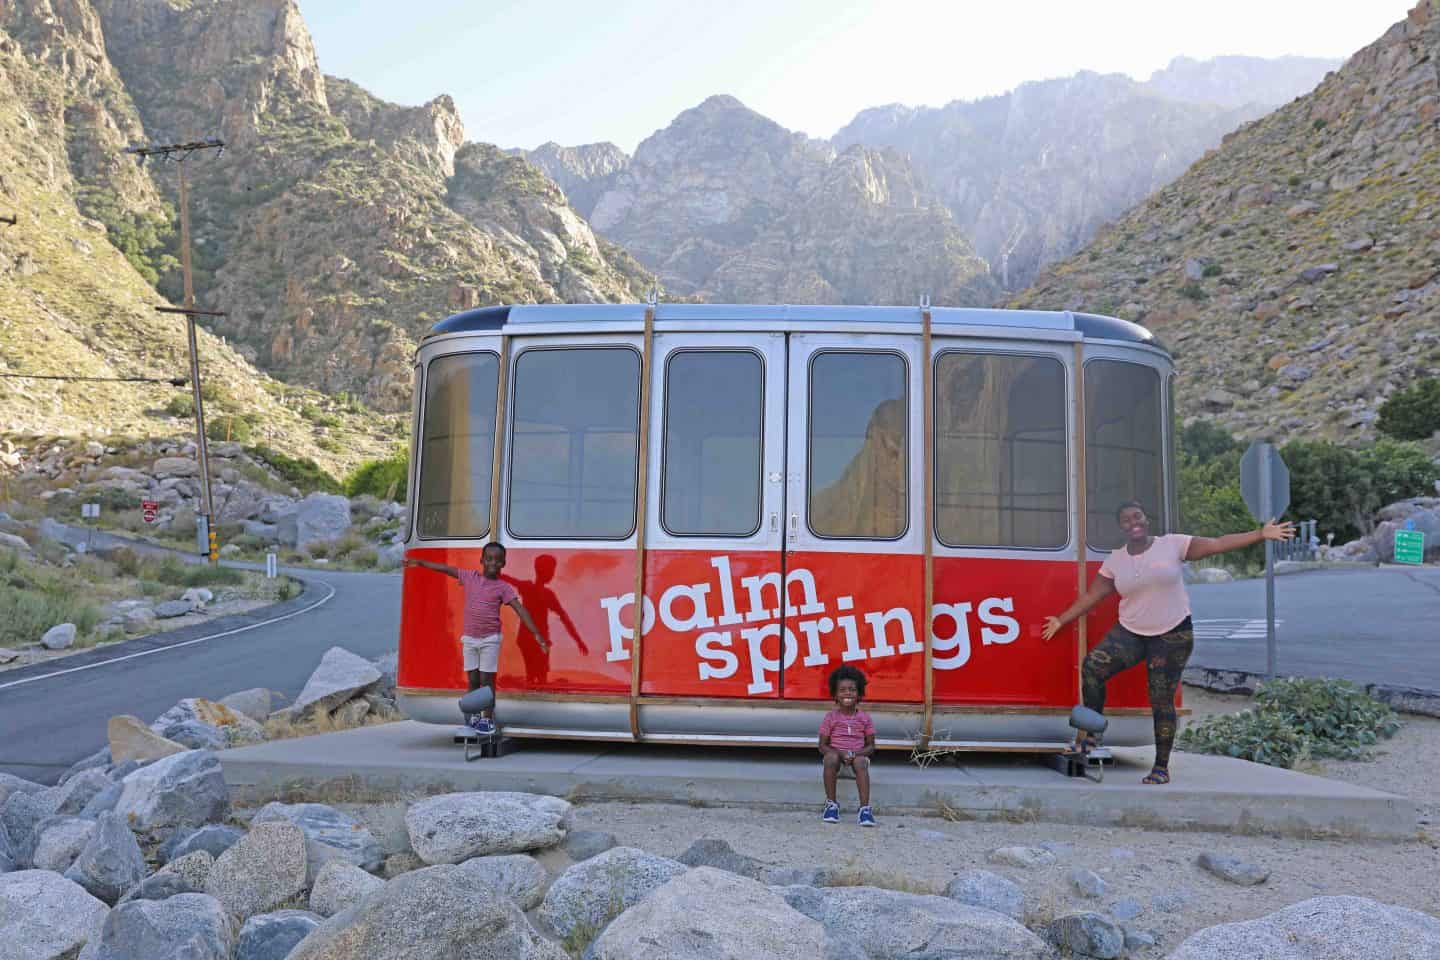 How To Vacation In Palm Springs With Kids